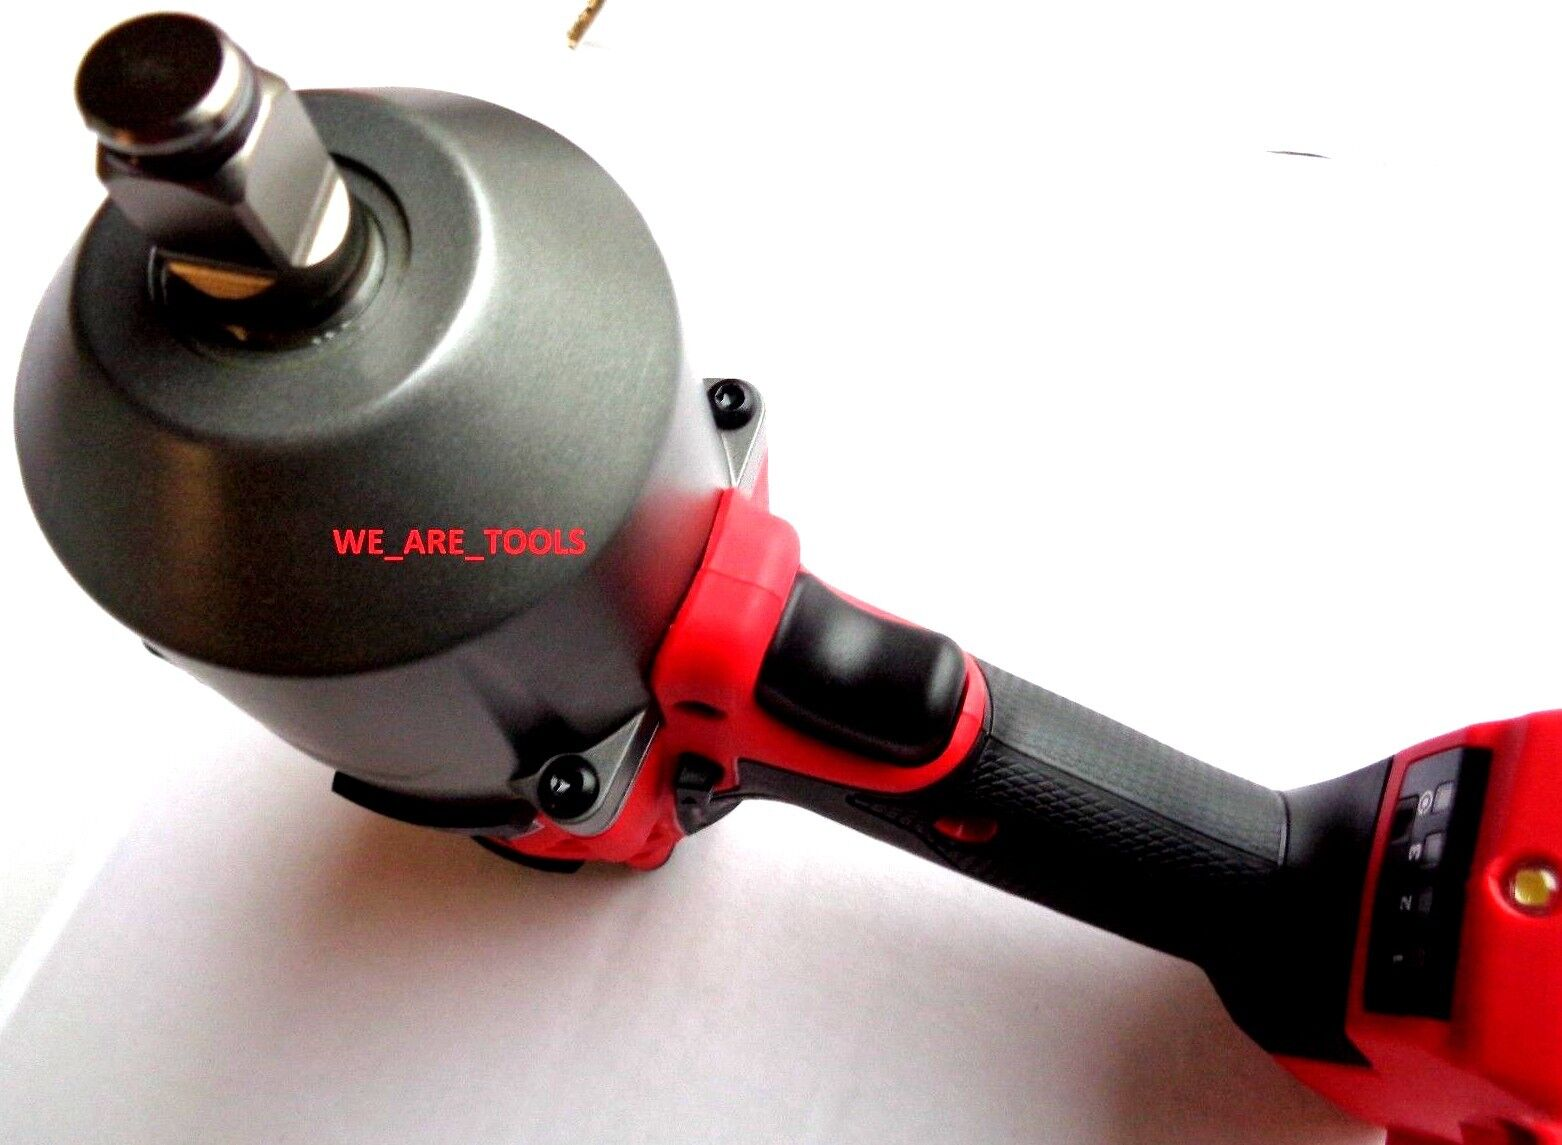 Milwaukee FUEL 2767-20 18V 1/2 Impact Wrench,(1) 48-11-1850 Battery, Charger M18 9